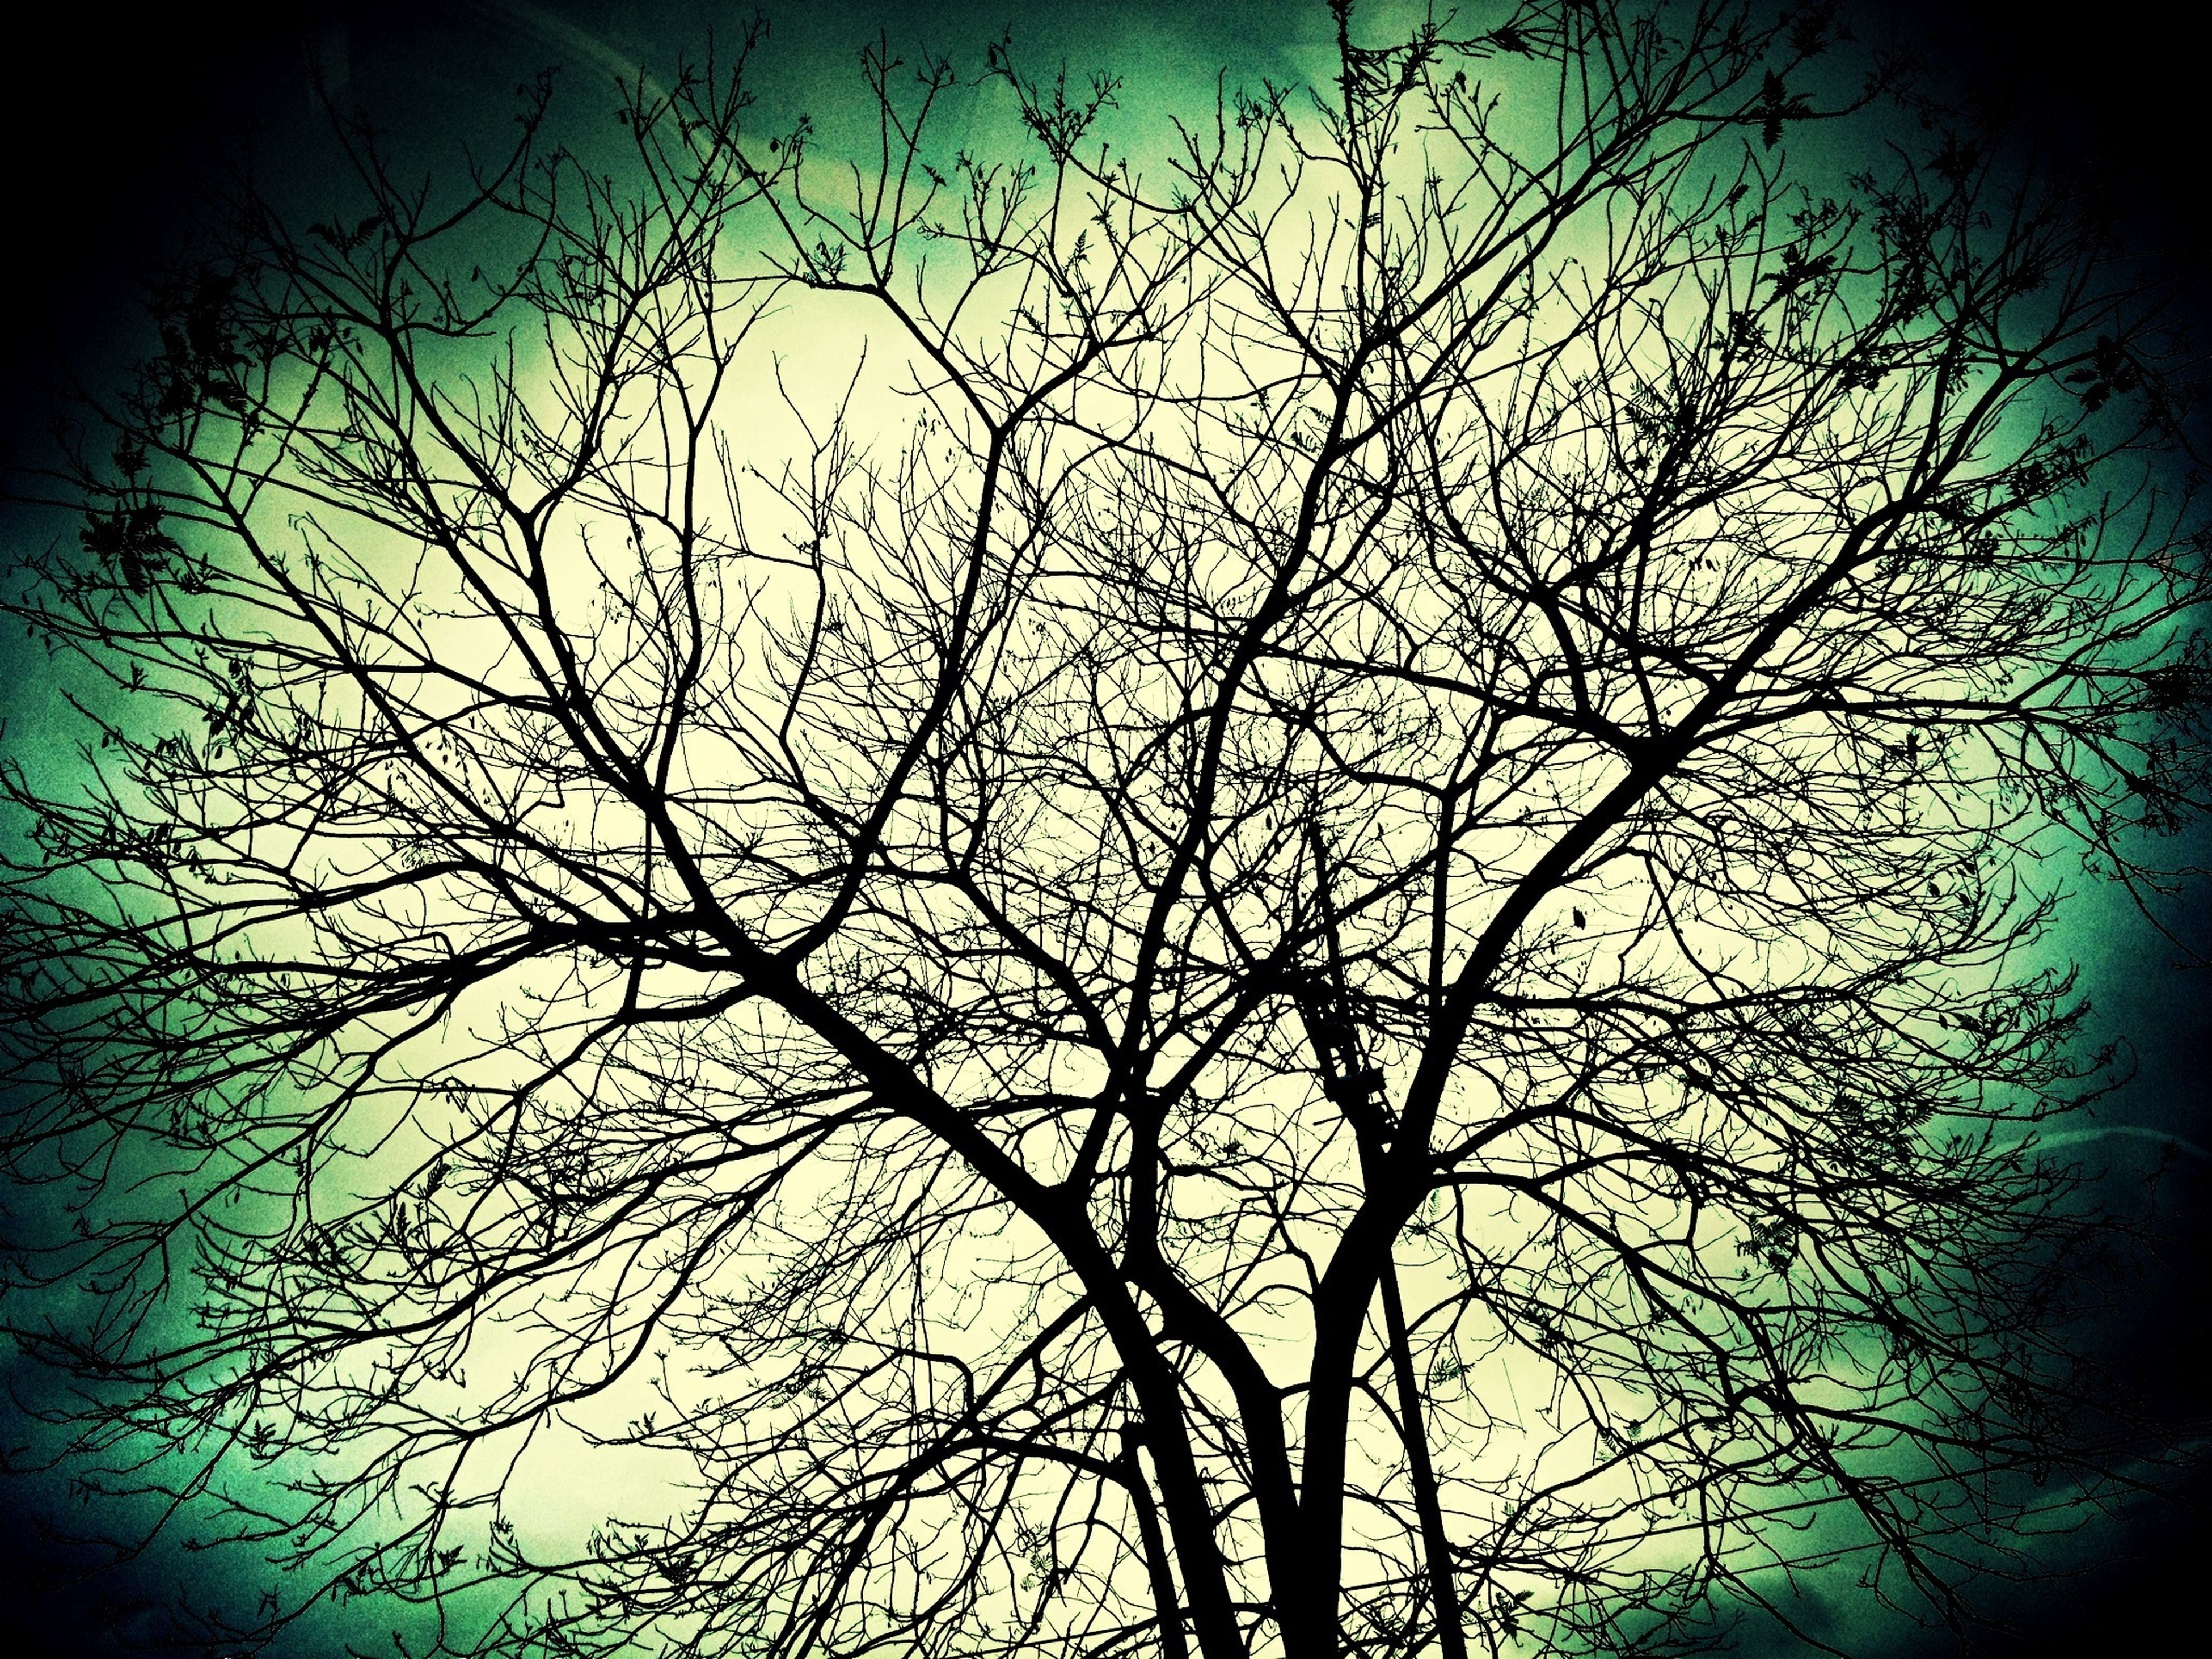 bare tree, branch, low angle view, tree, silhouette, auto post production filter, transfer print, nature, sky, dusk, night, no people, clear sky, tranquility, outdoors, backgrounds, dark, growth, full frame, vignette